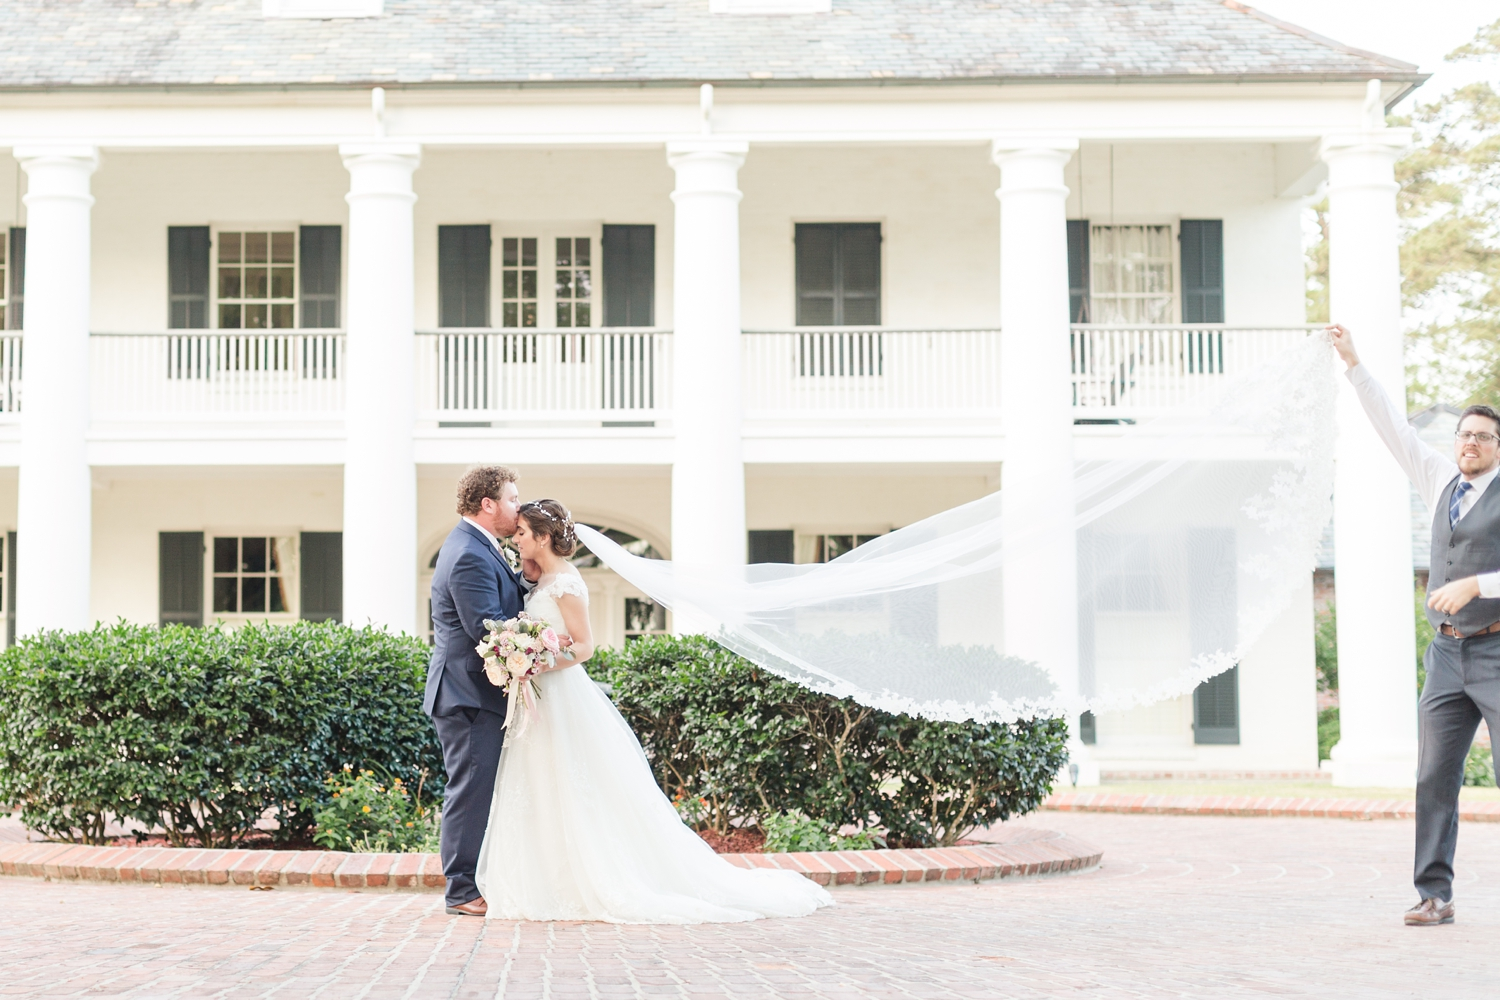 The classy veil throw. Love these gorgeous buildings in Louisiana!